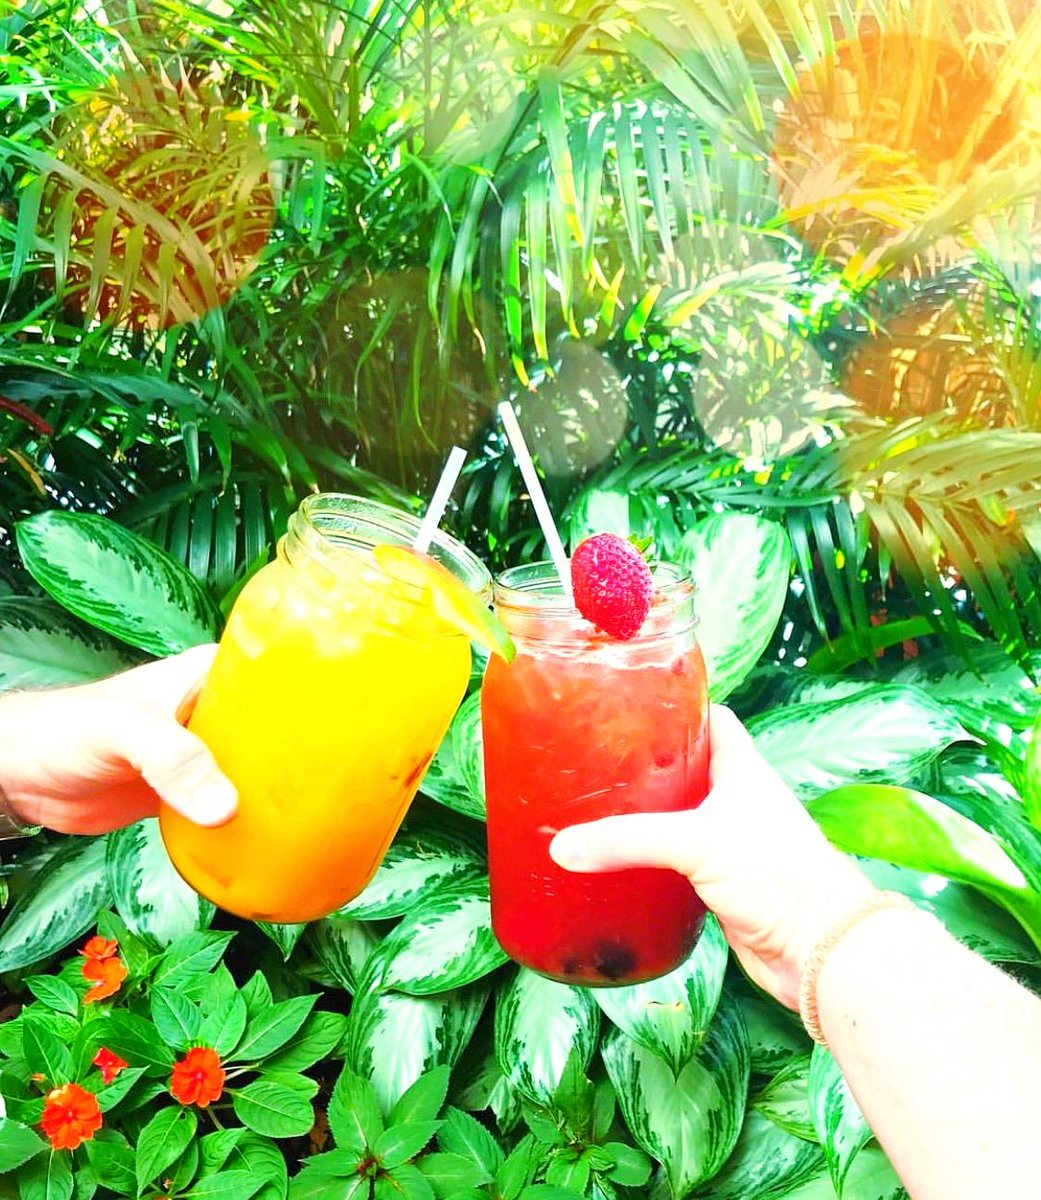 Cheers to Sunday Brunch 😘🍹 #Sunday #SundayBrunch #SundayFunday #weekend #PeacockGardenBistro  #Miami #CoralGables #CoconutGrove